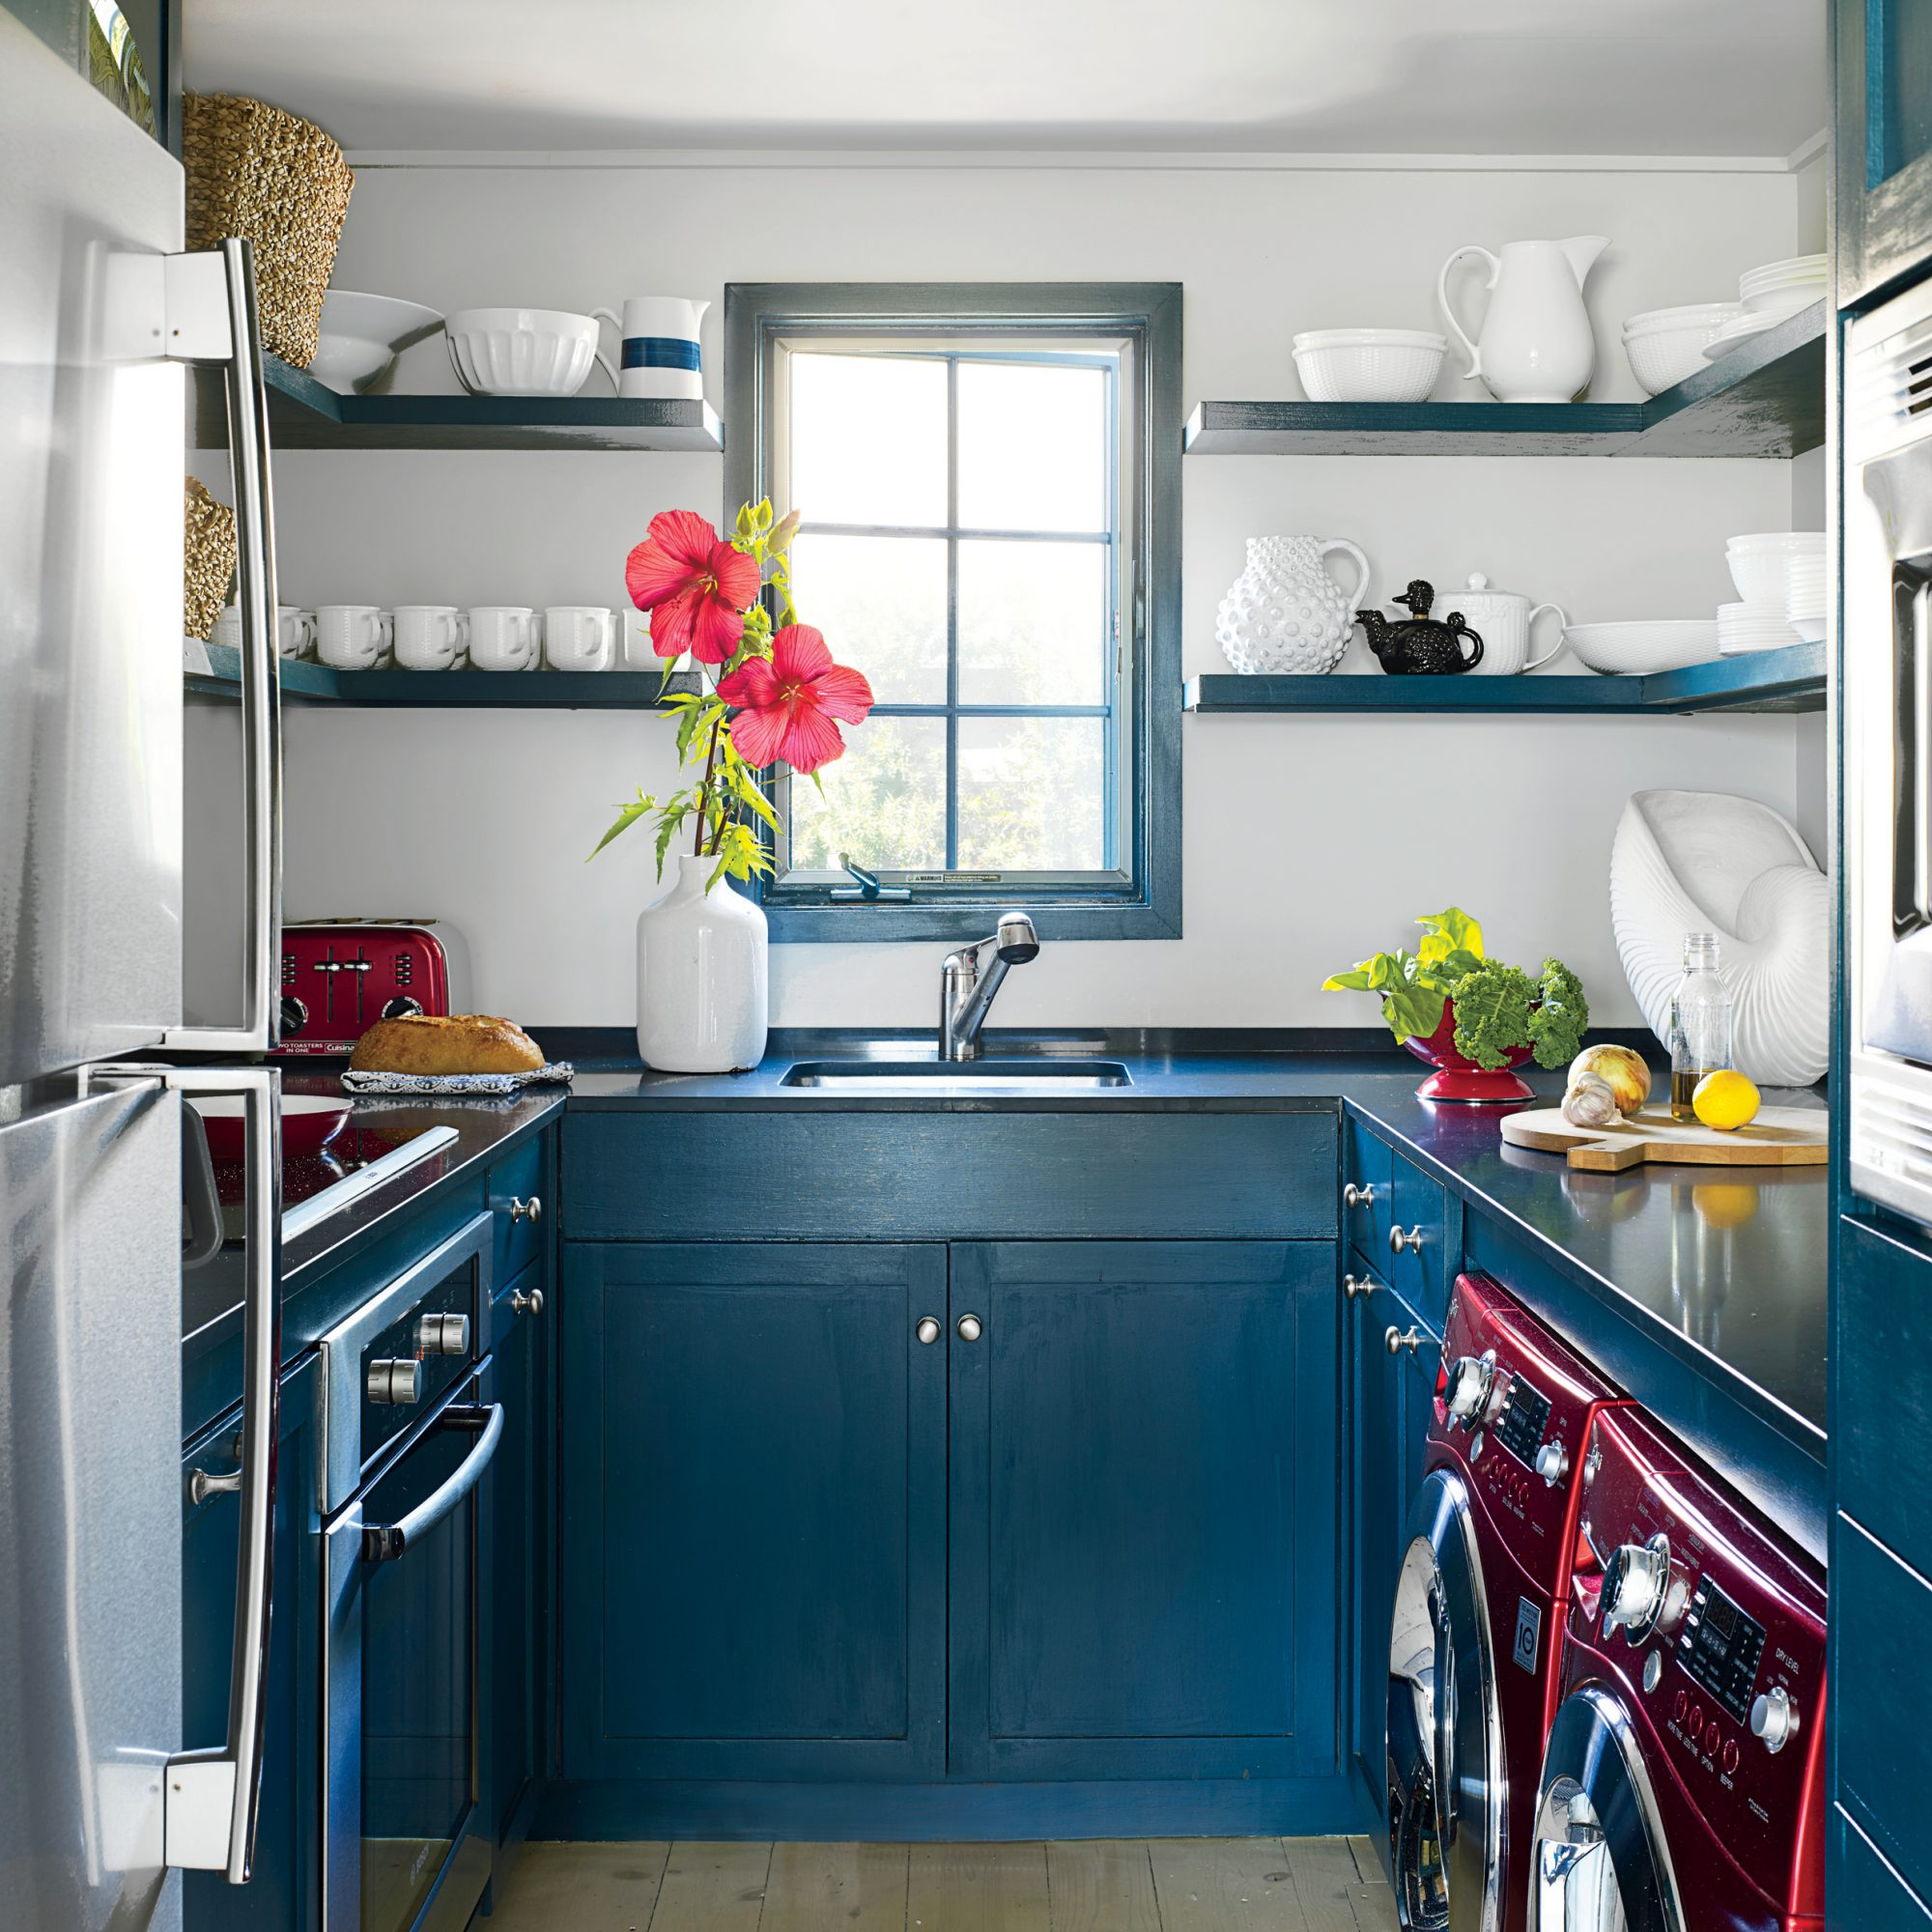 A washer and dryer in the small galley kitchen allow the room to do double duty.